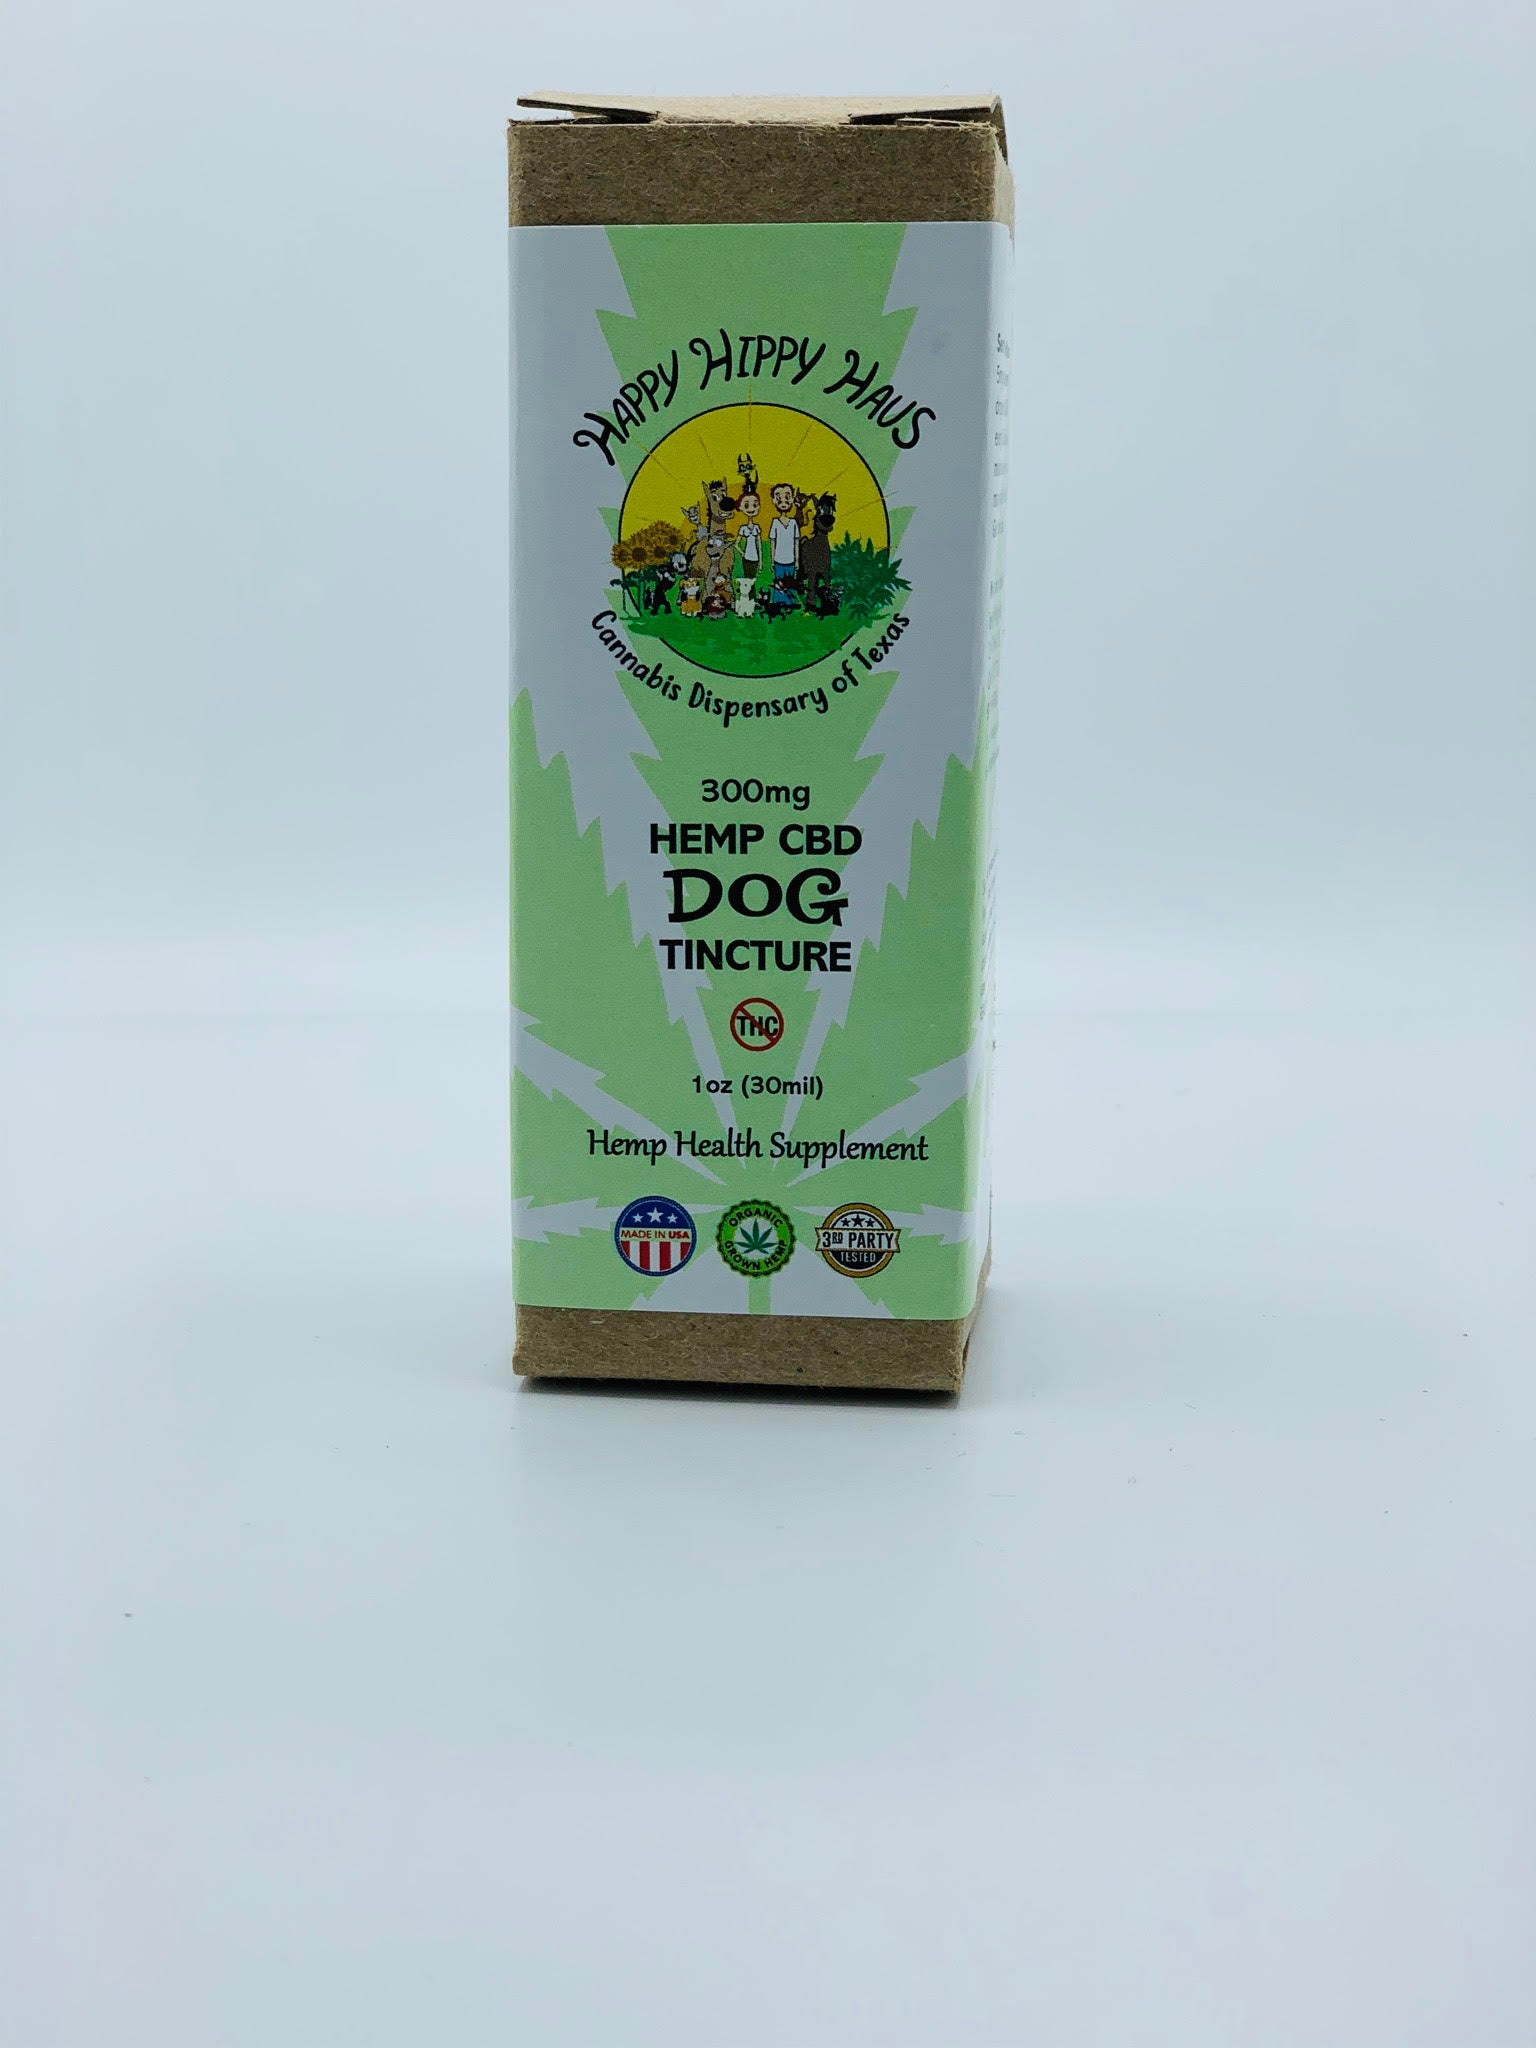 300mg Hemp CBD Dog Tincture